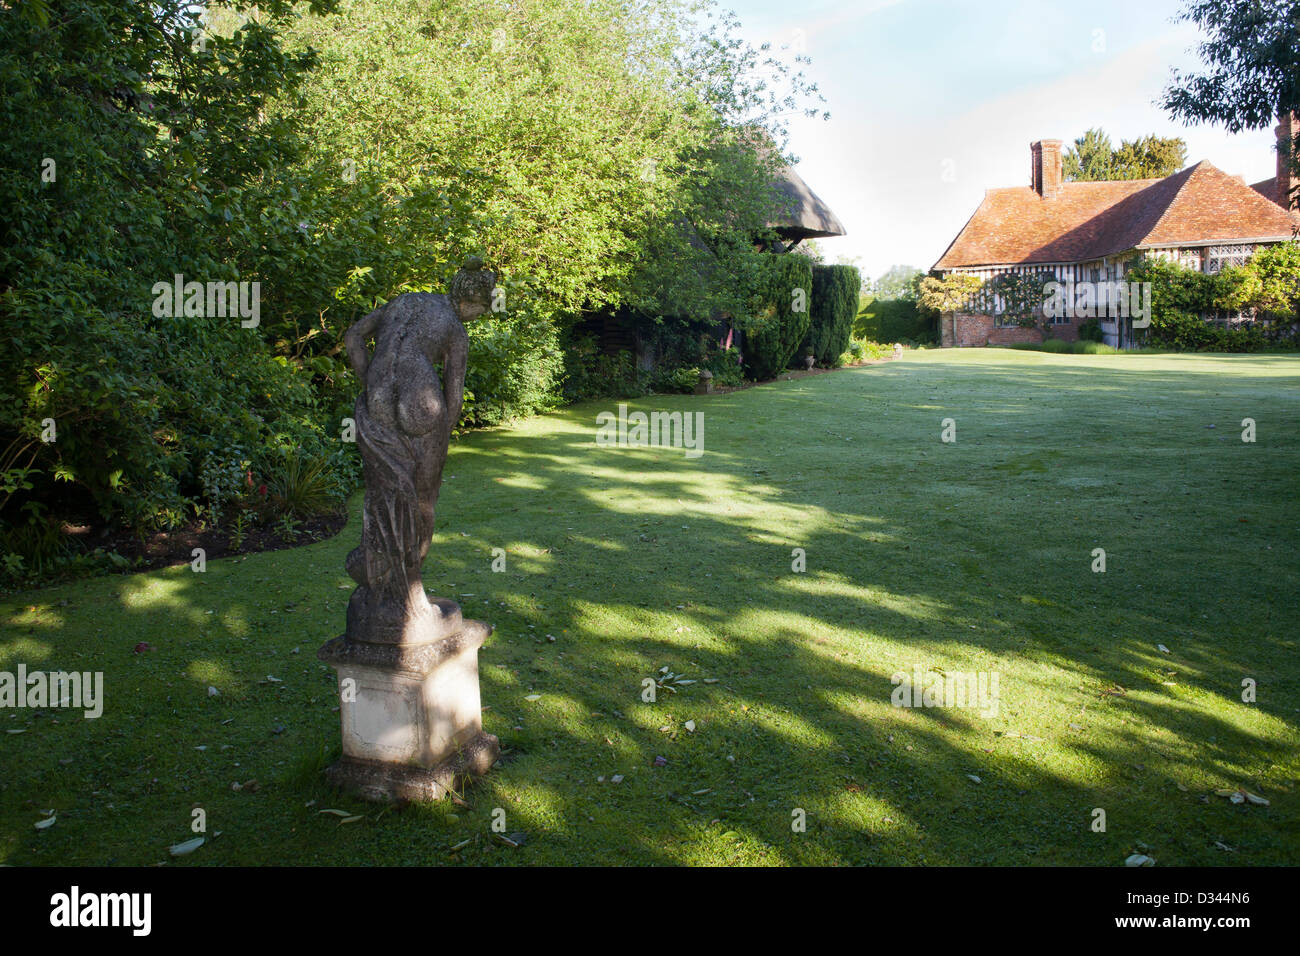 View across the garden towards the house with woman statue in foreground, Bexon Manor. Stock Photo